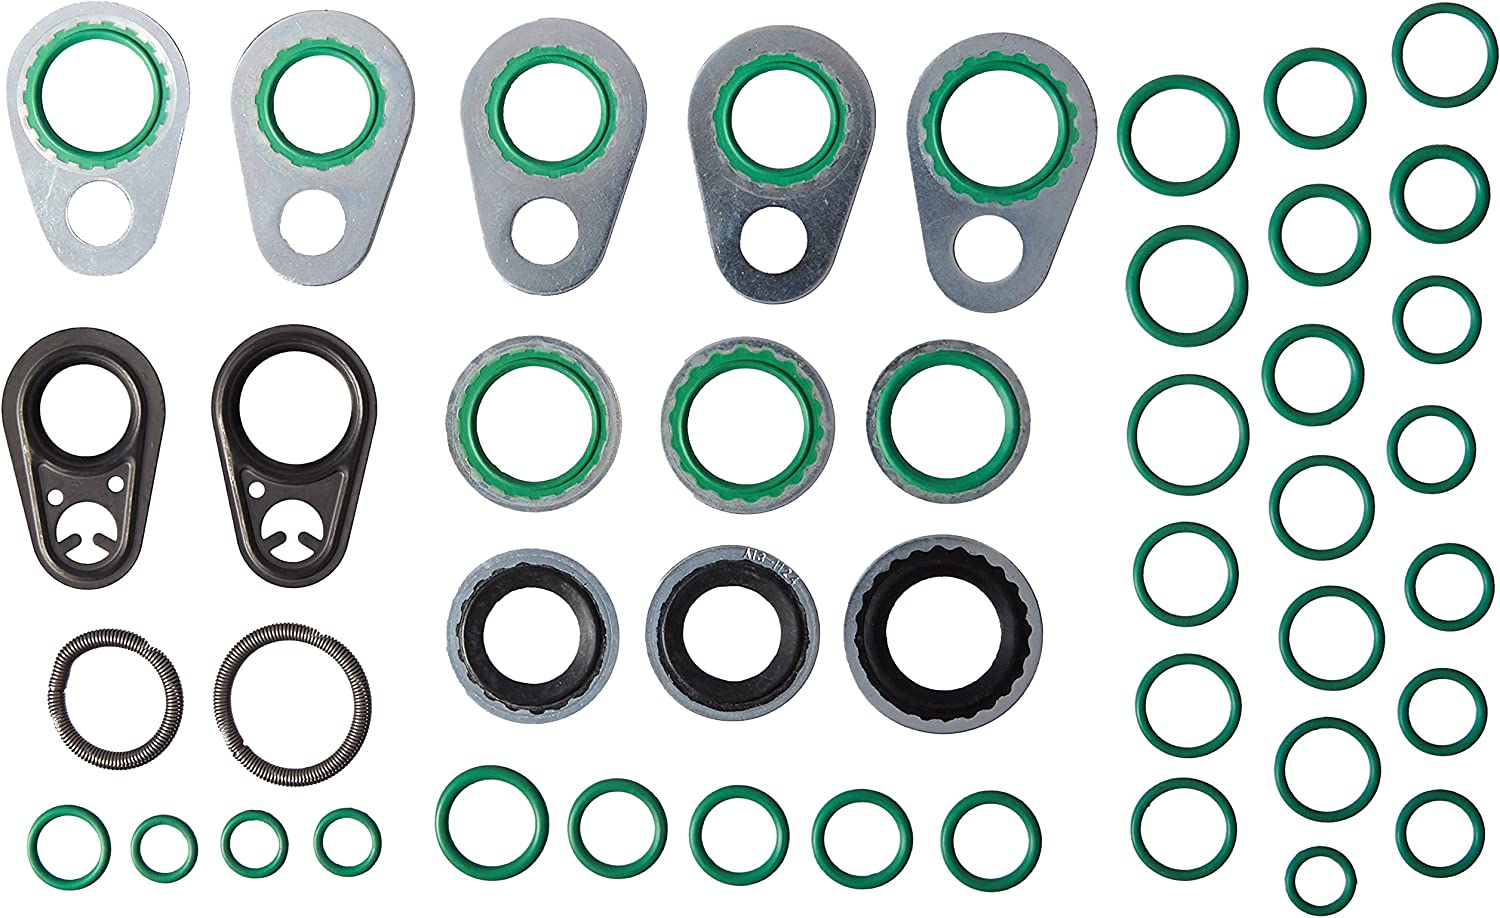 Four Seasons 26813 A//C System O-Ring and Gasket Kit